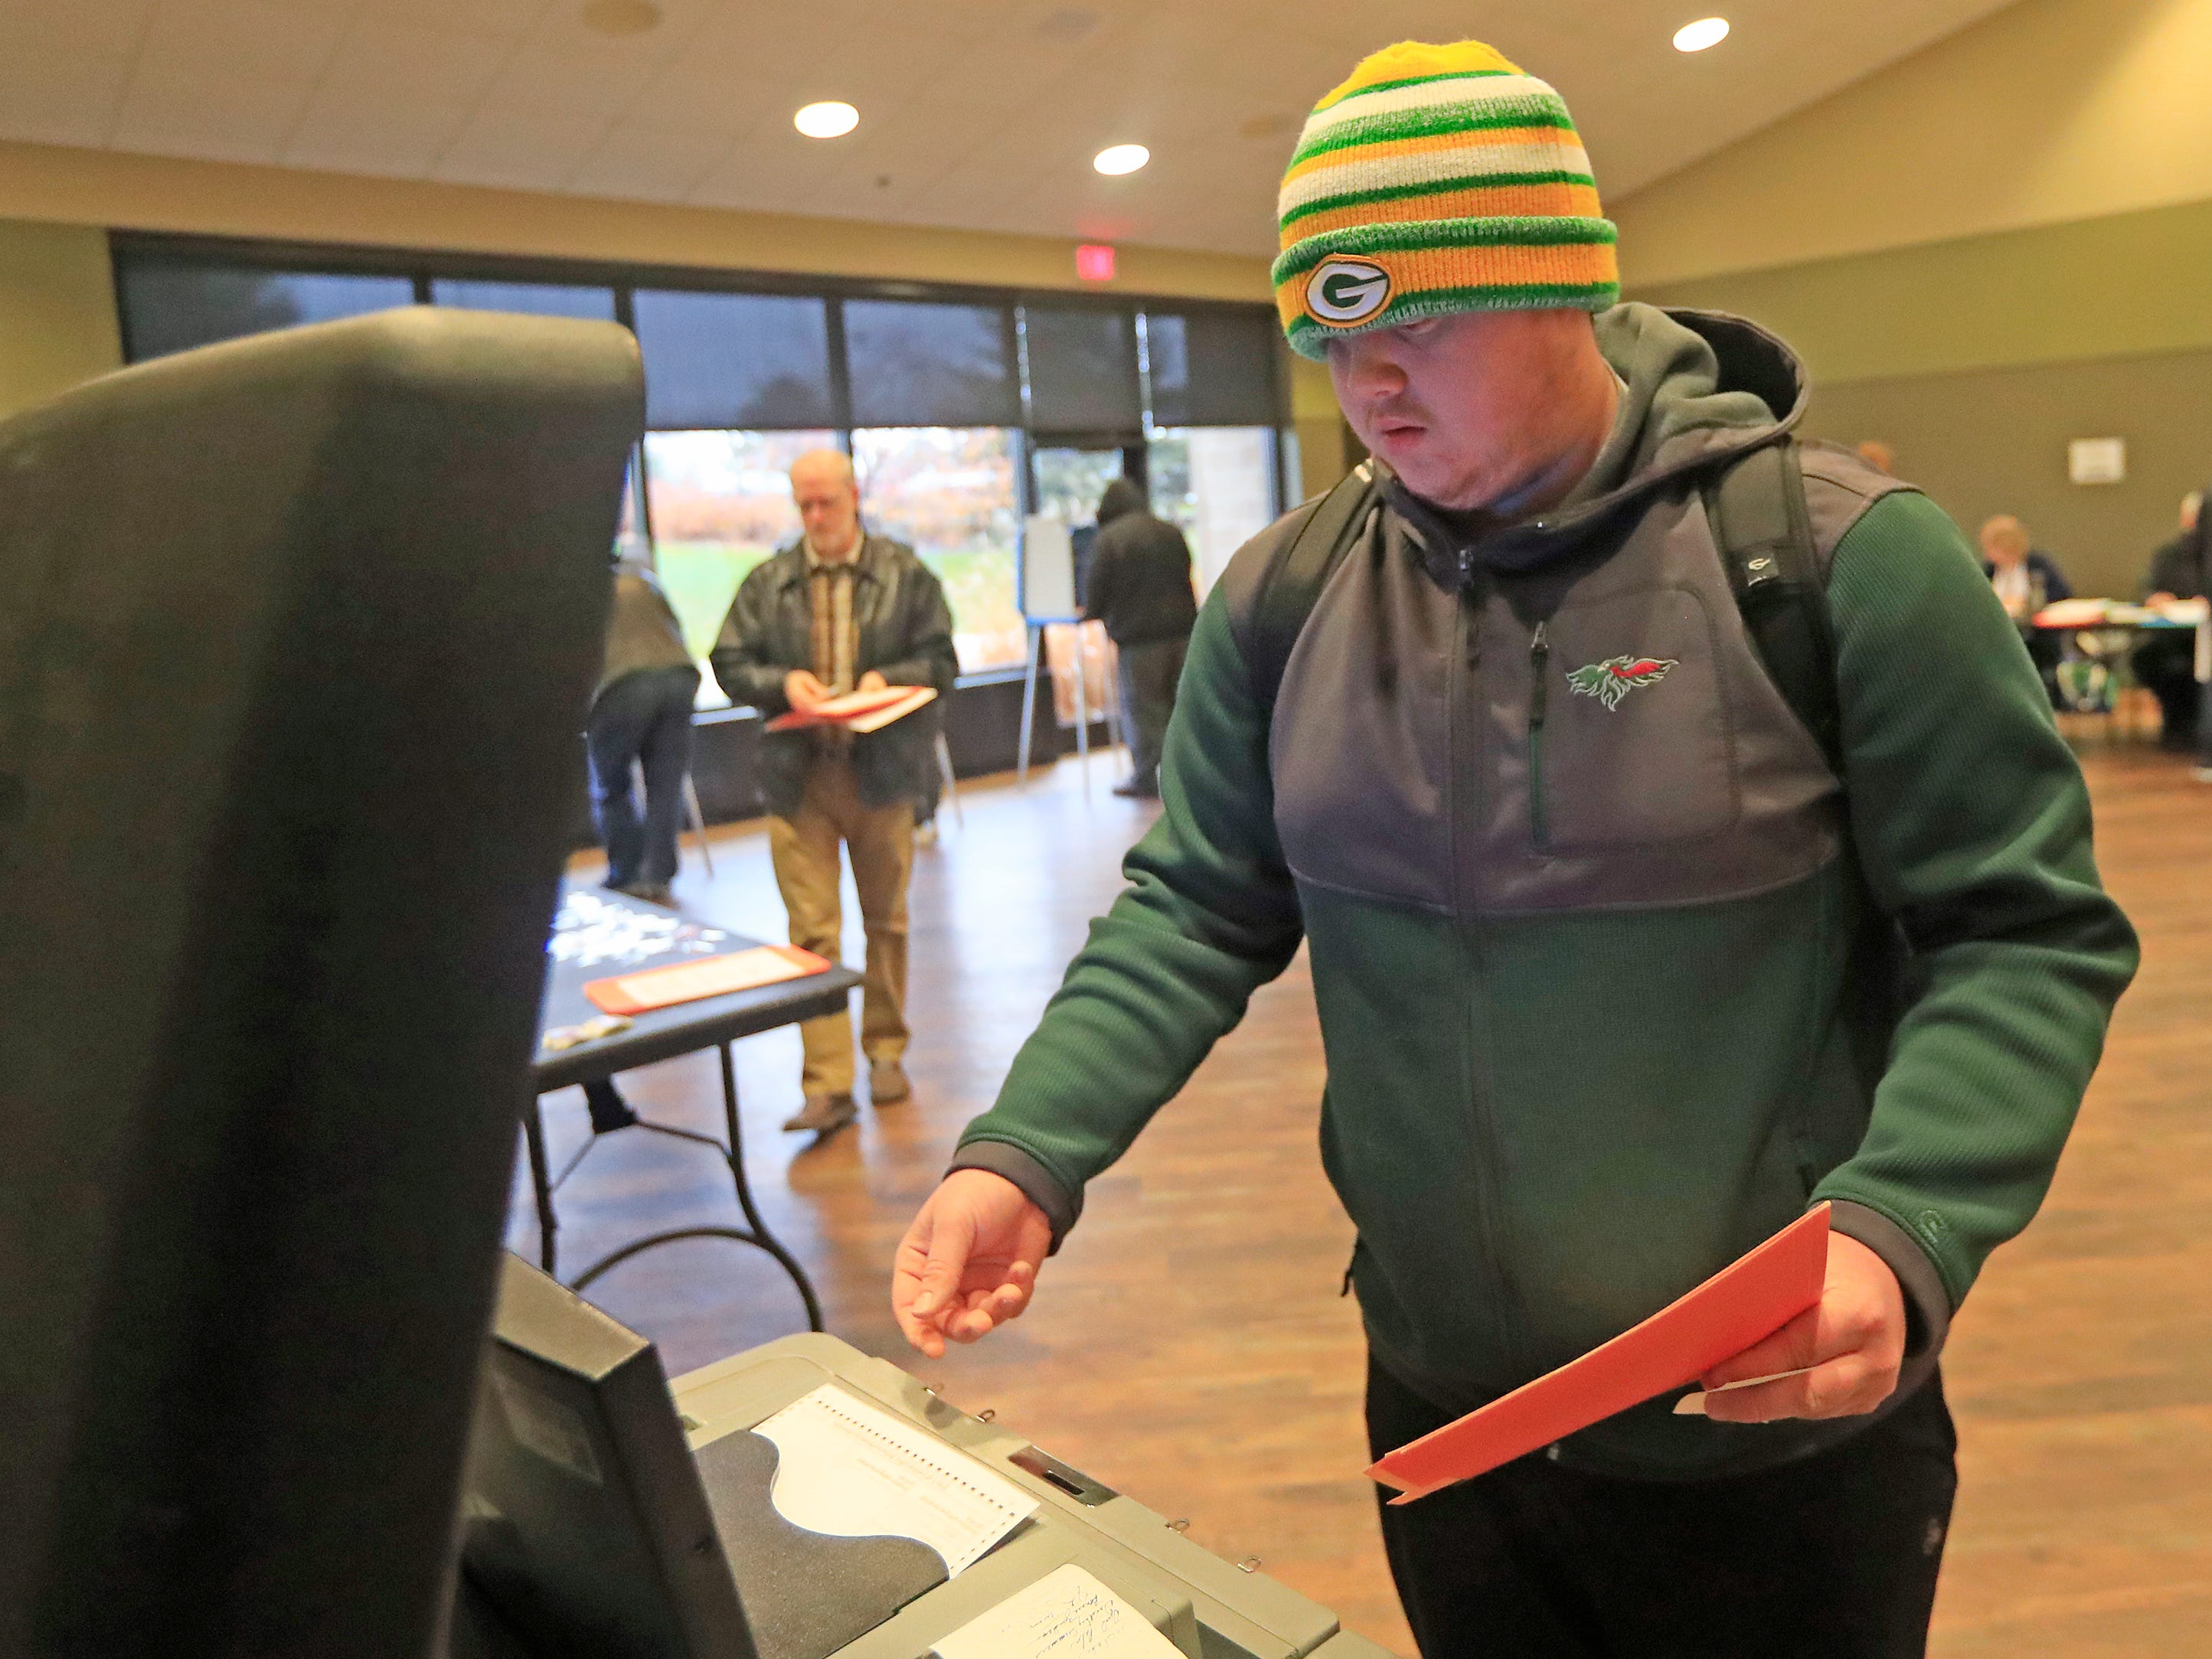 UW-Green Bay student Chad Schneider casts his ballot after registering to vote at the UW-Green Bay campus on Tuesday, November 6, 2018, in Green Bay, Wis.